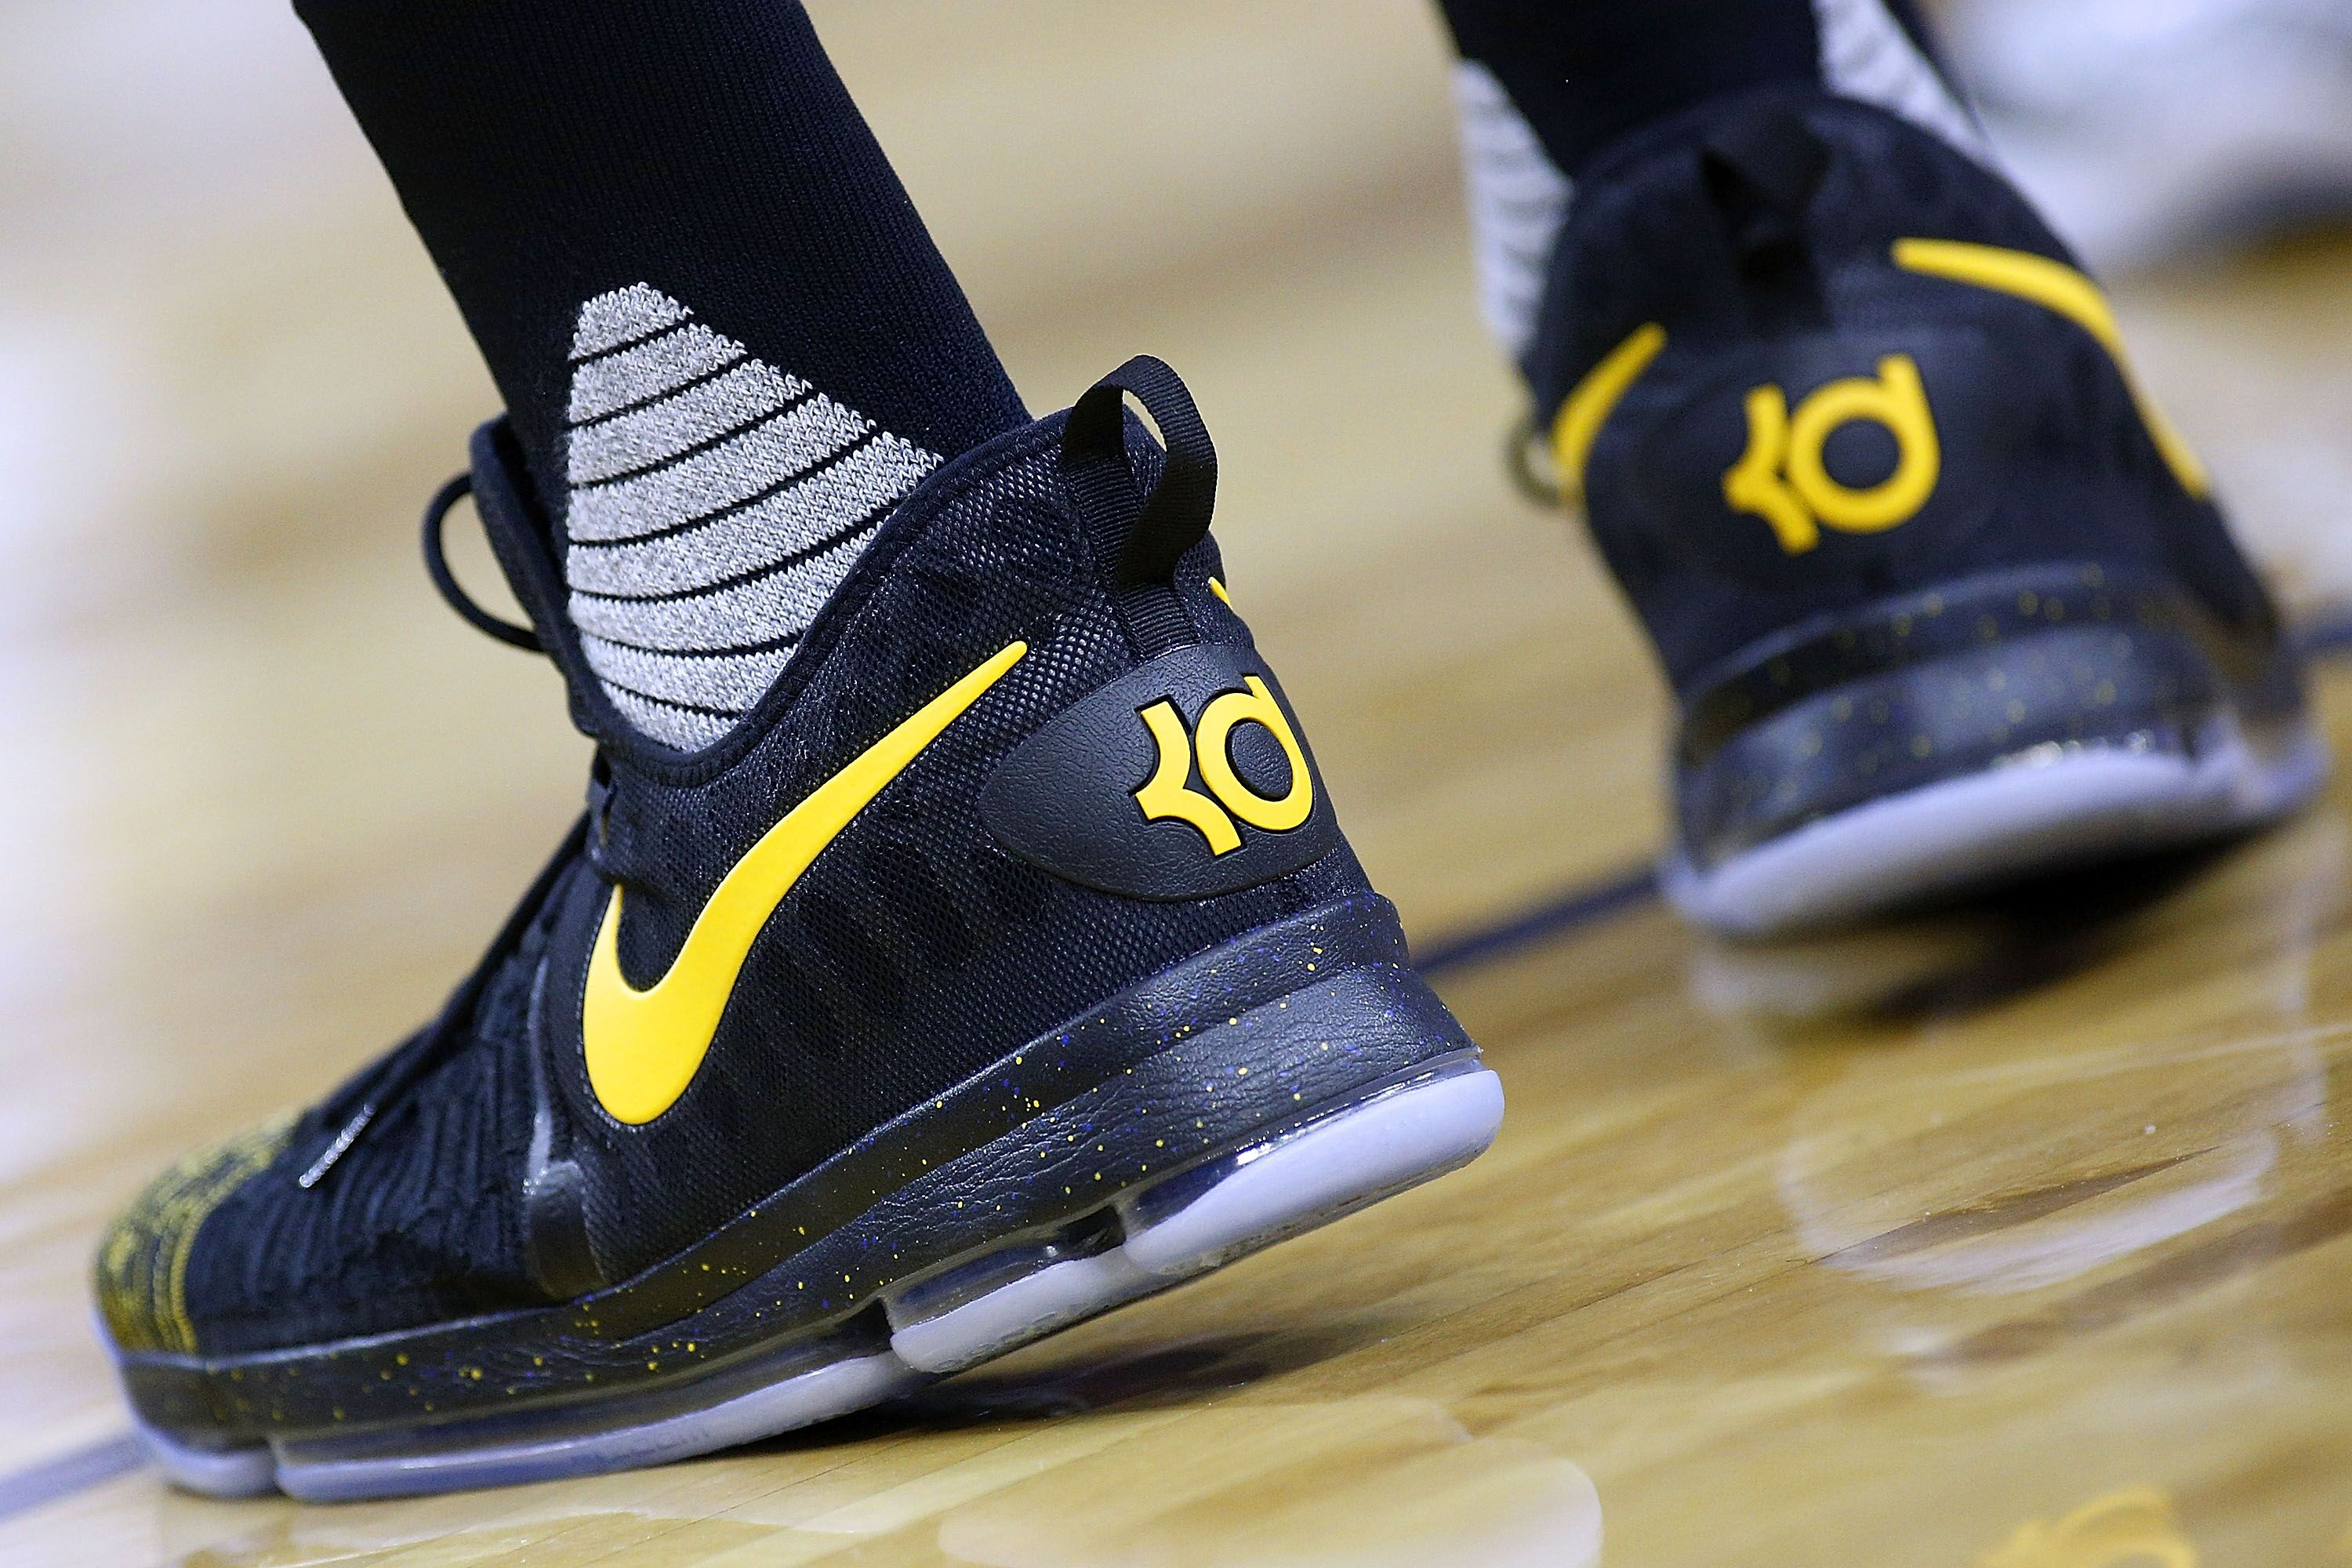 Kevin Durant and Nike going all in on two new pairs of KD's